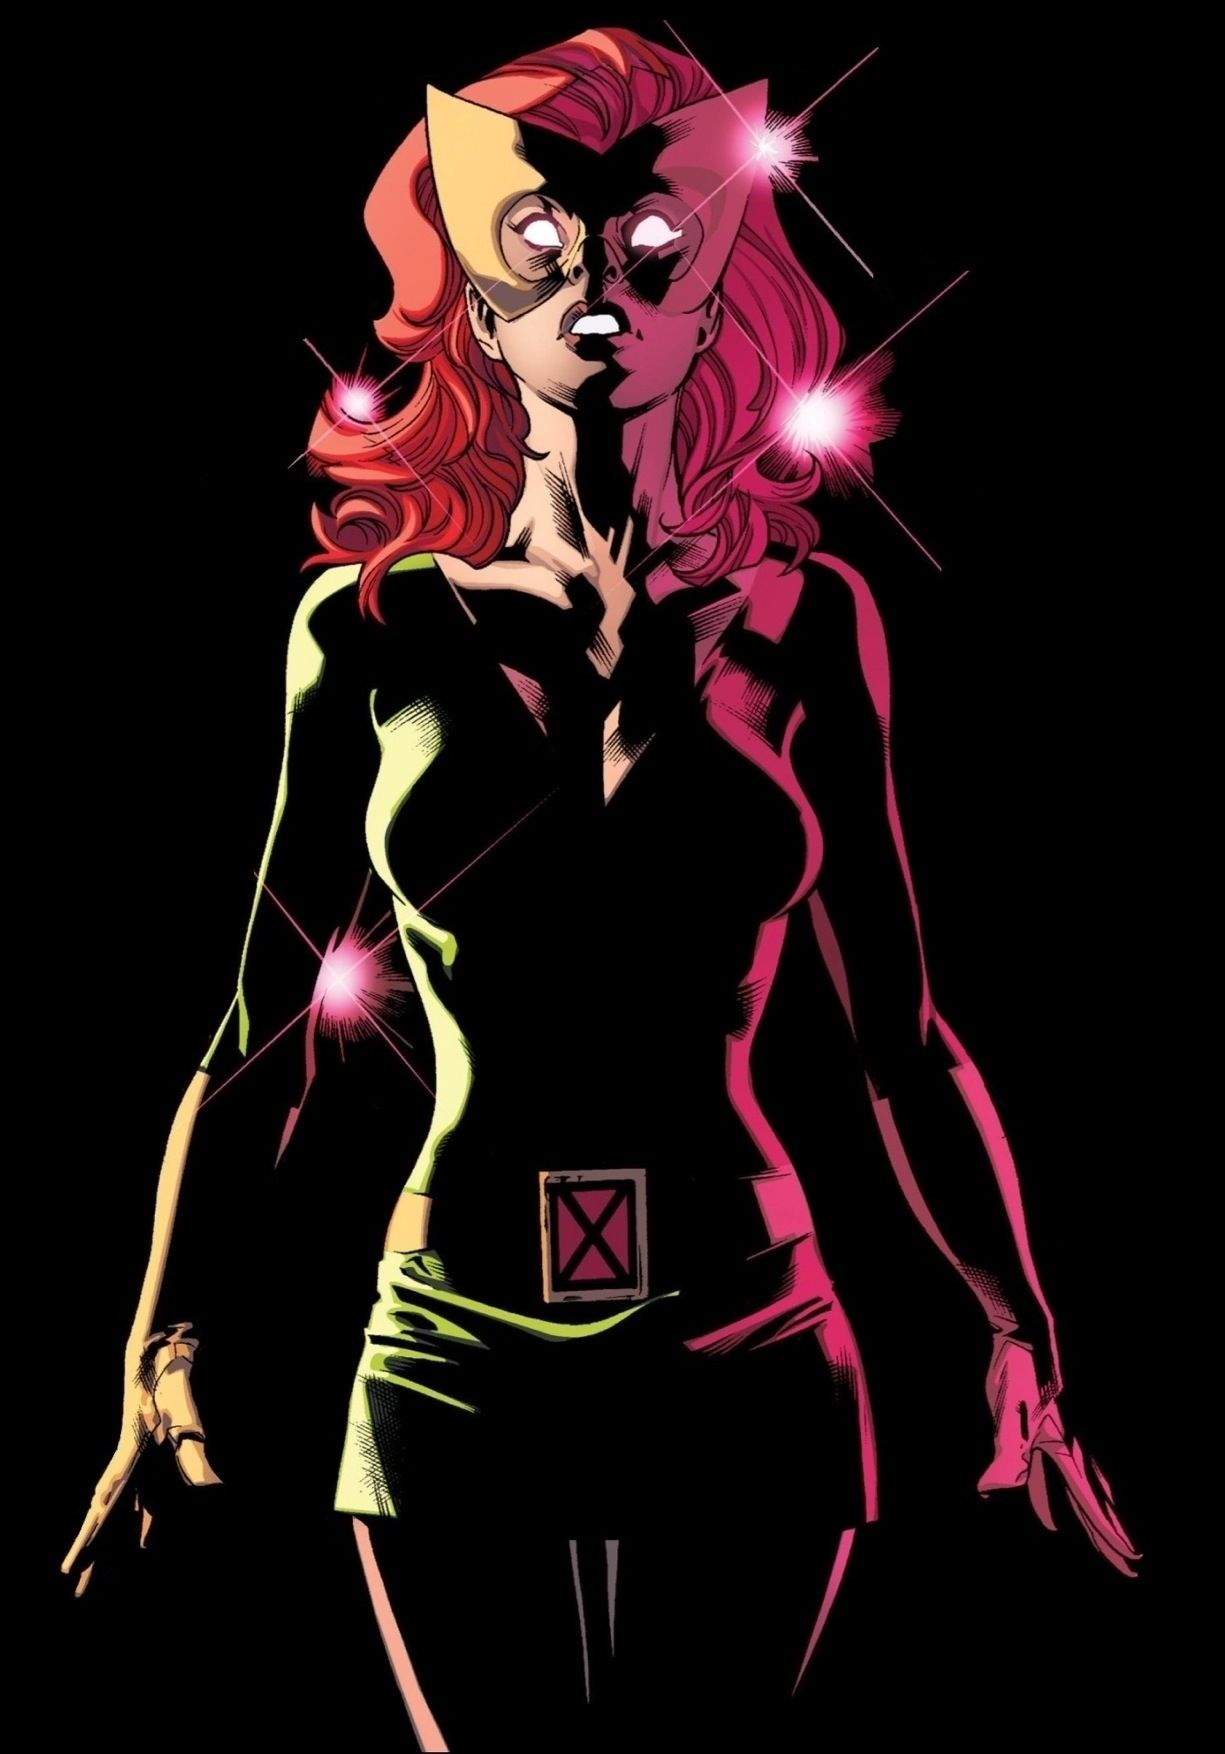 Wallpaper iphone 6 xman - Jean Grey Wallpaper I Edited The Jean Grey Foldout Page From Issue 5 Of All New